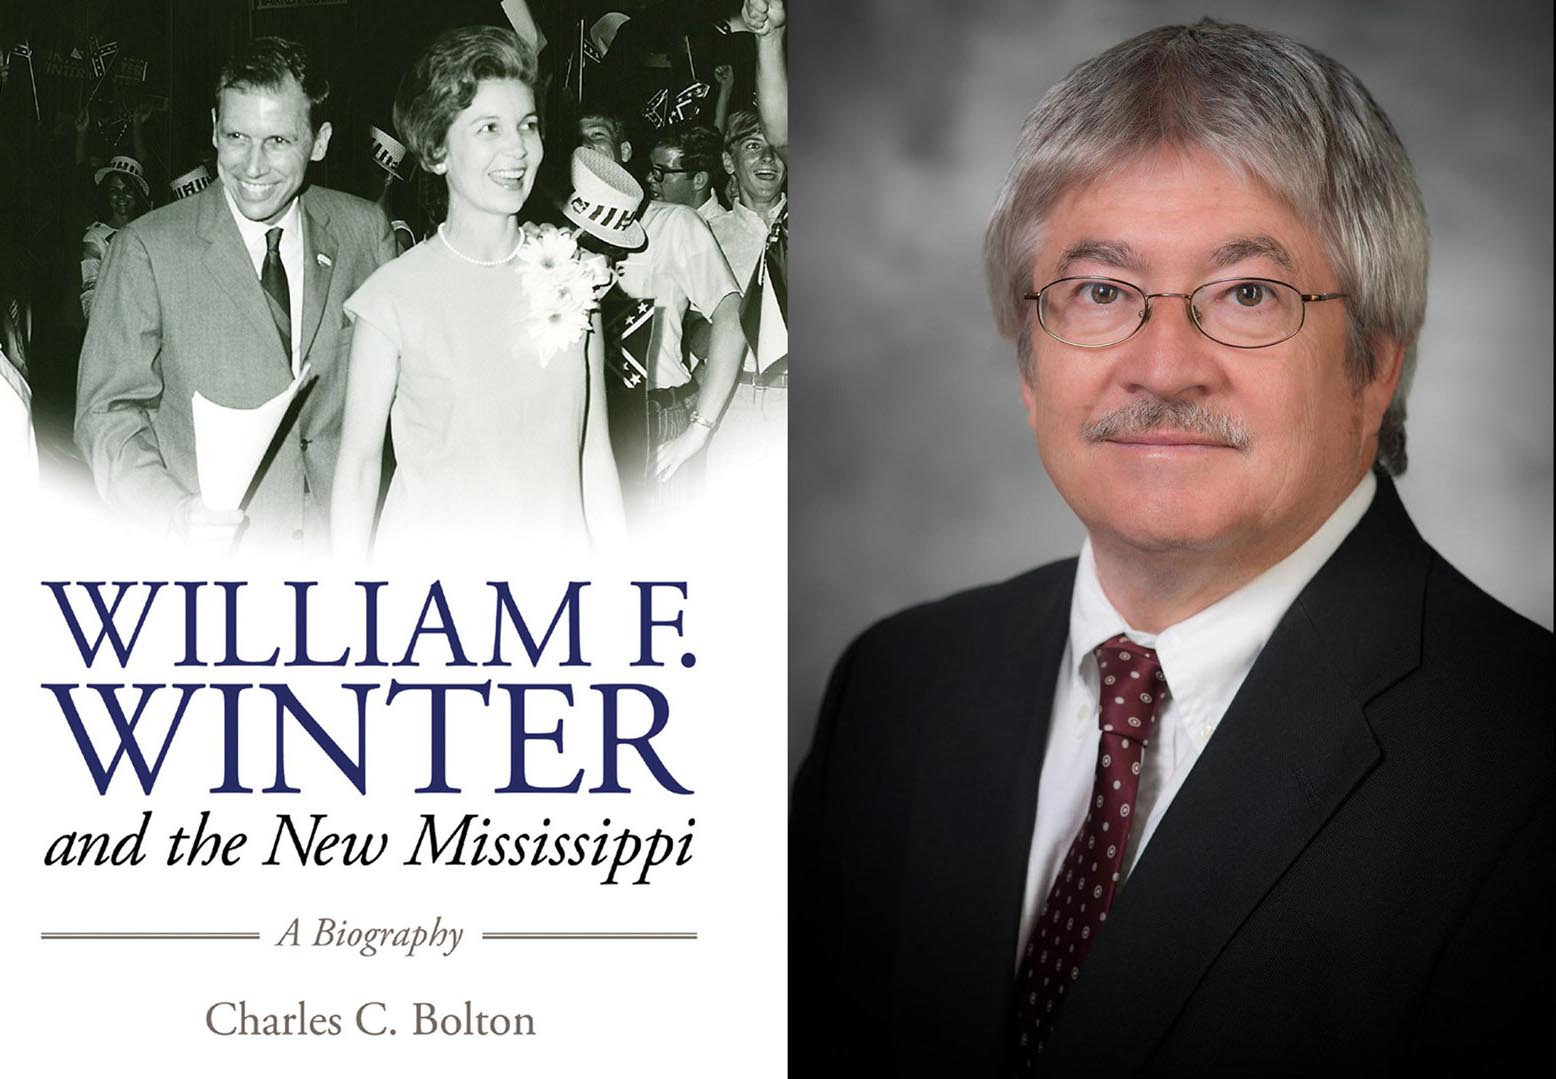 Charles Bolton and the cover of his book, William F Winter and the New Mississippi